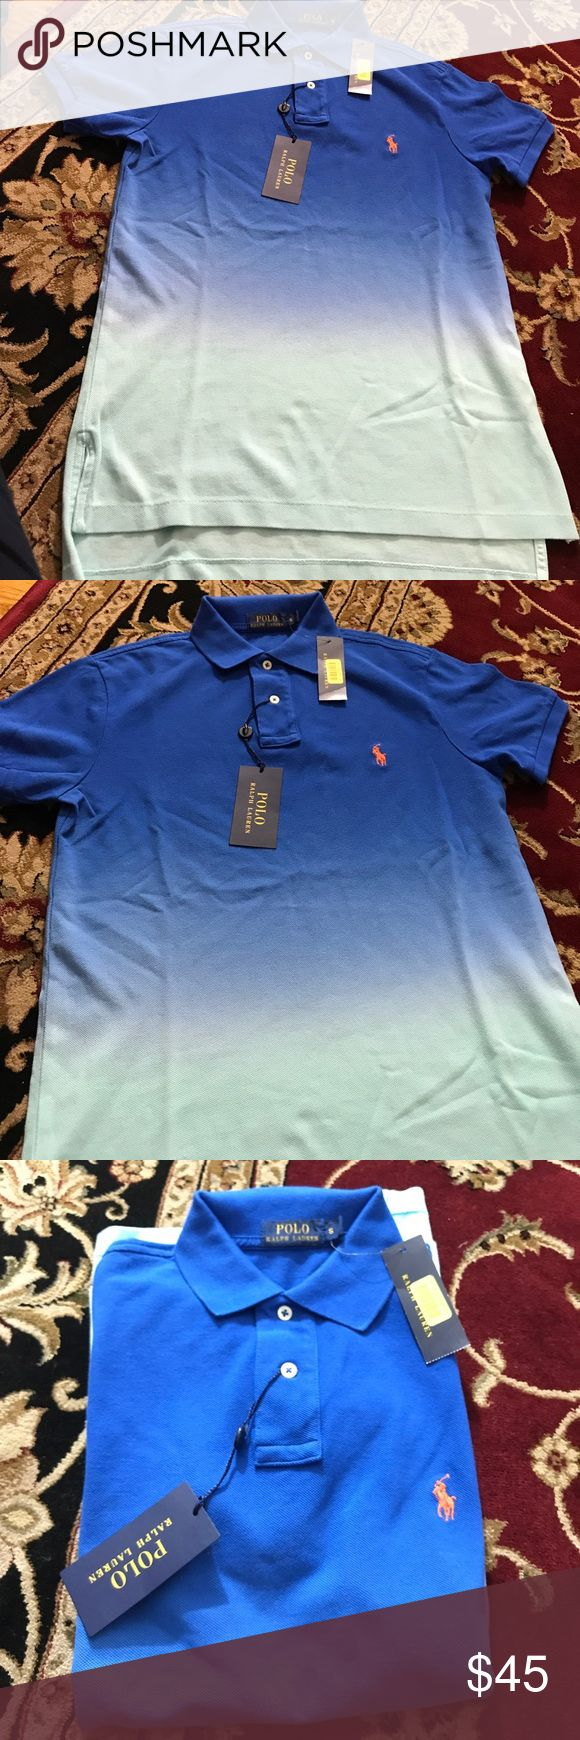 Polo Ralph Lauren Mesh Cotton Shirt $98 Size Small Size Small New with tags  My prices are firm and fair 100% Mesh Cotton  Dark and Light Blue Color I guarantee authentication of this shirt.  I can make you a bundle to save money on shipping cost .So please check my other items.  Code : GRE Polo by Ralph Lauren Shirts Polos